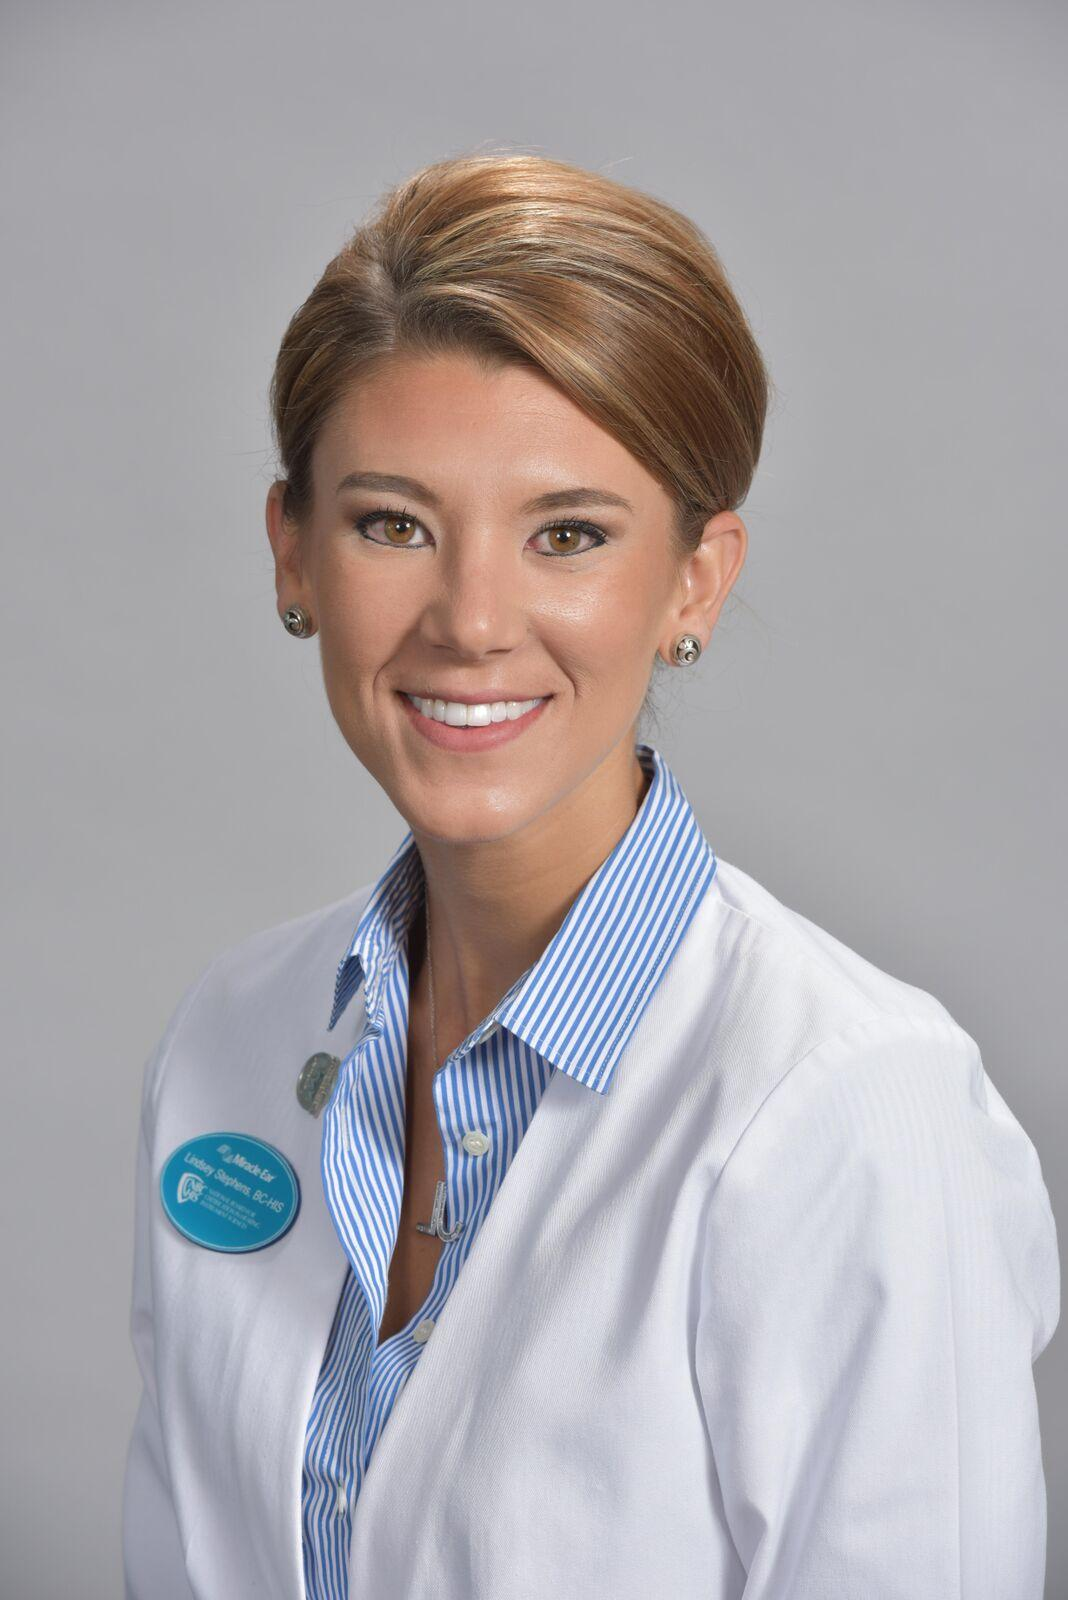 Profile Photo of Lindsey - Board Certified in Hearing Instrument Sciences